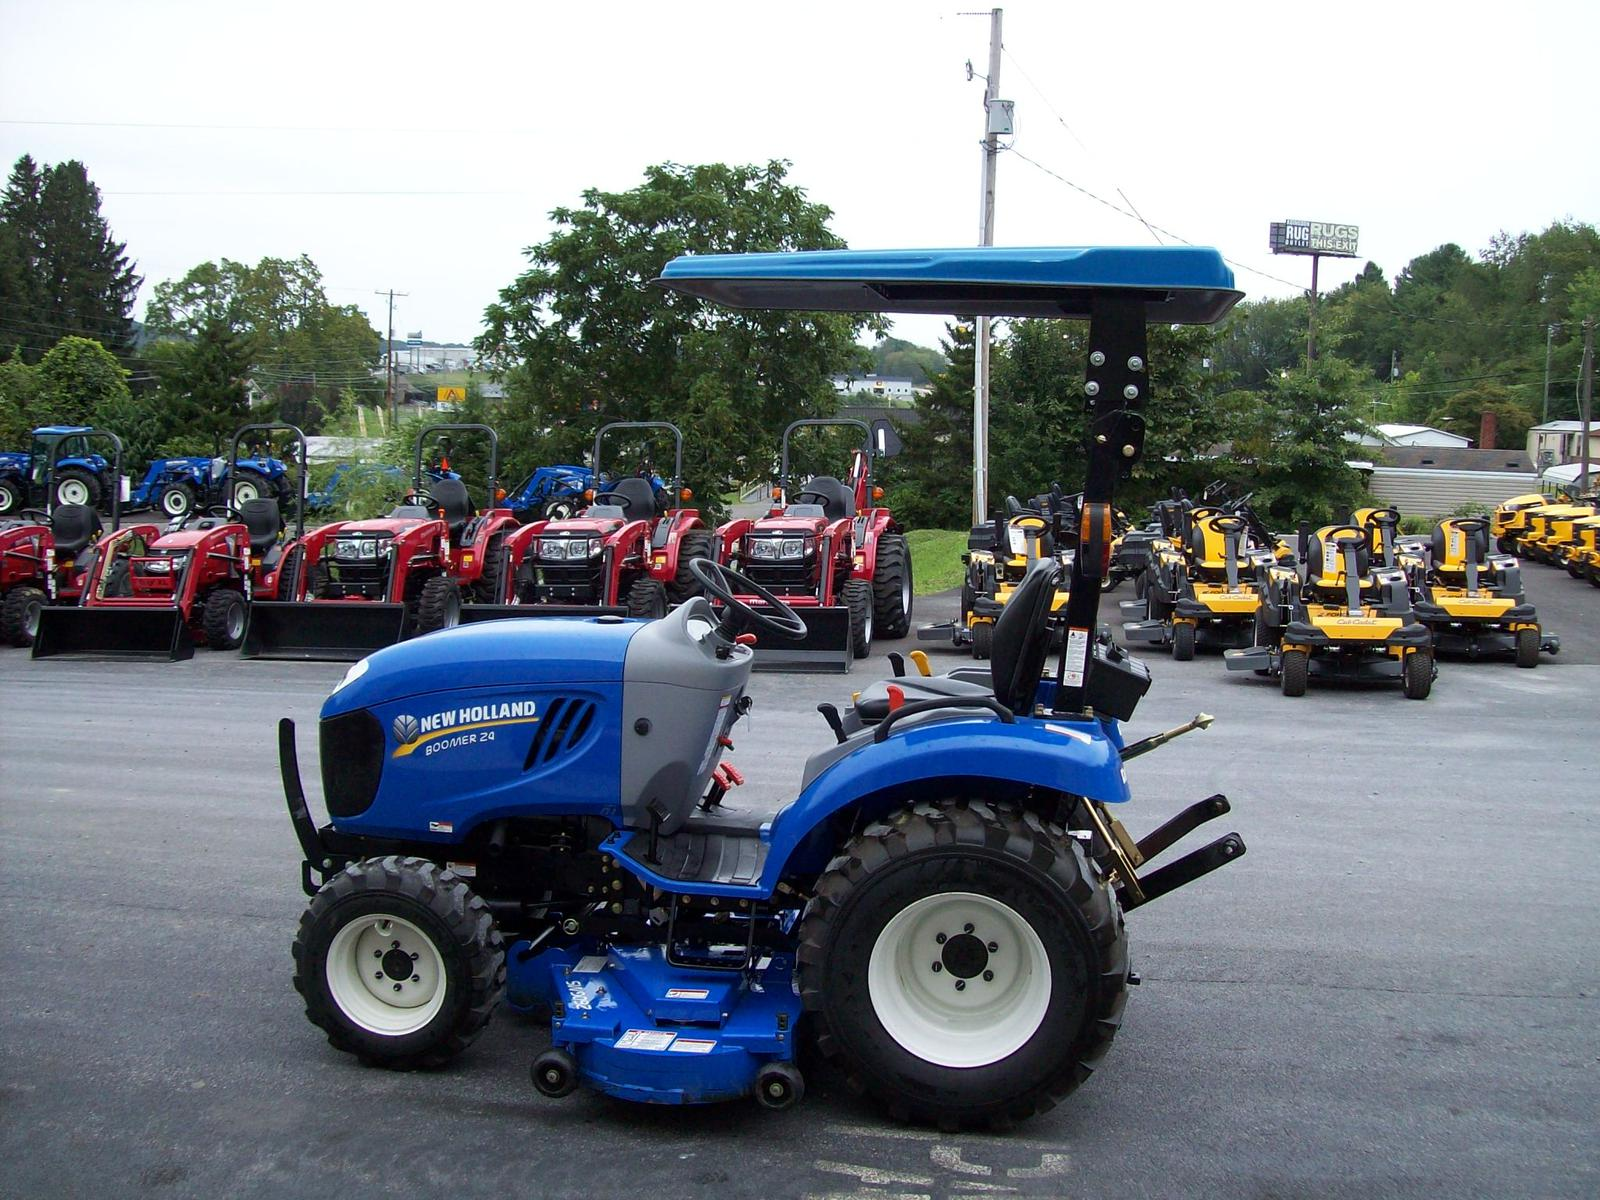 2017 New Holland Agriculture Boomer Series 24 HP Boomer 24 for sale in Abingdon VA | Progressive Tractor Inc. (800) 443-1735 & 2017 New Holland Agriculture Boomer Series 24 HP Boomer 24 for ...